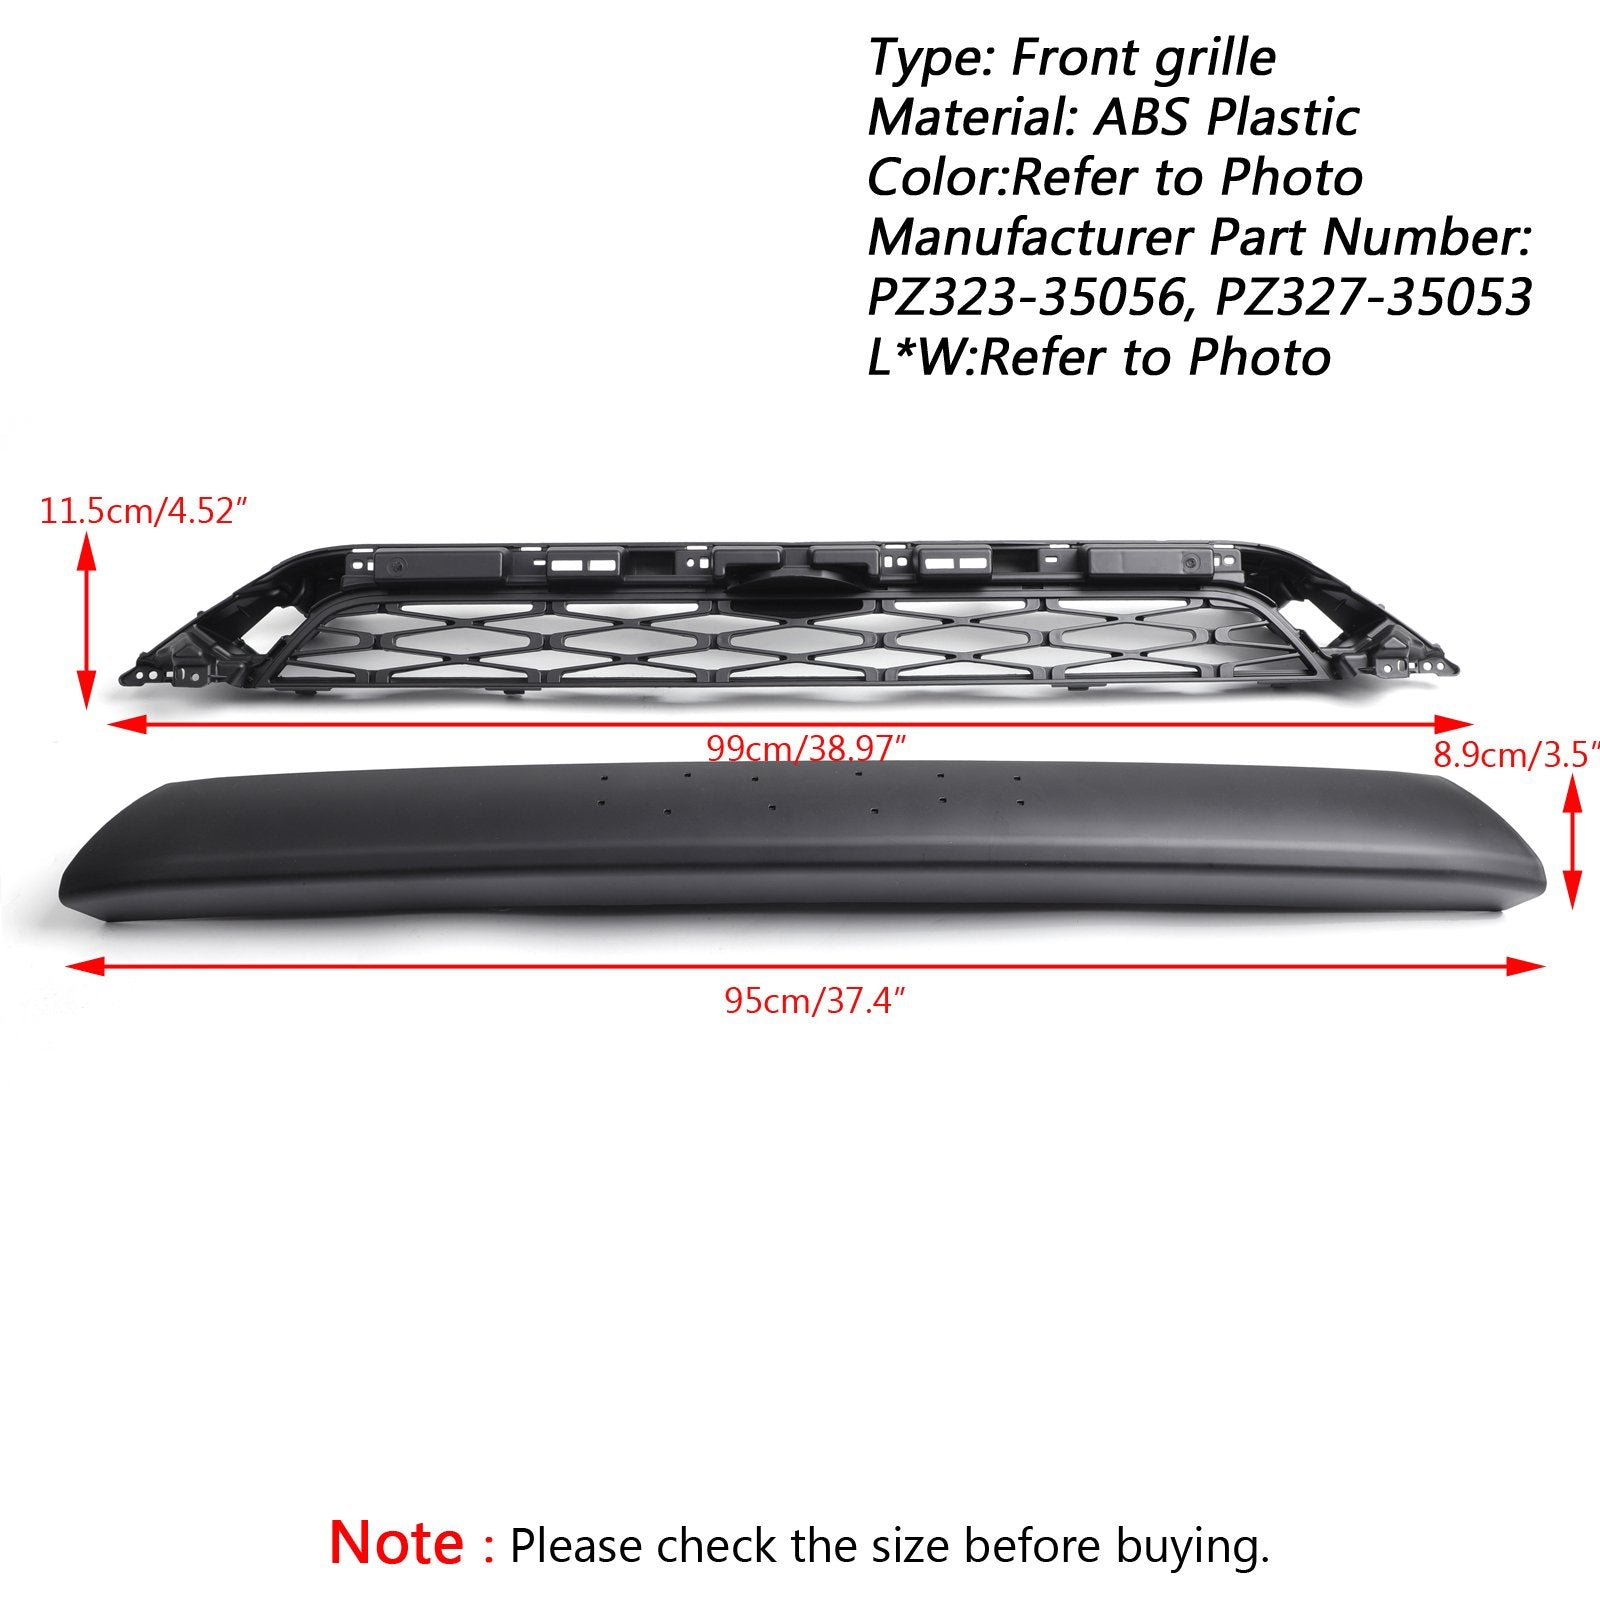 4Runner TRD PRO 2014-2019 Toyota 2 Piece Front Bumper Grill Replacement Grille Generic